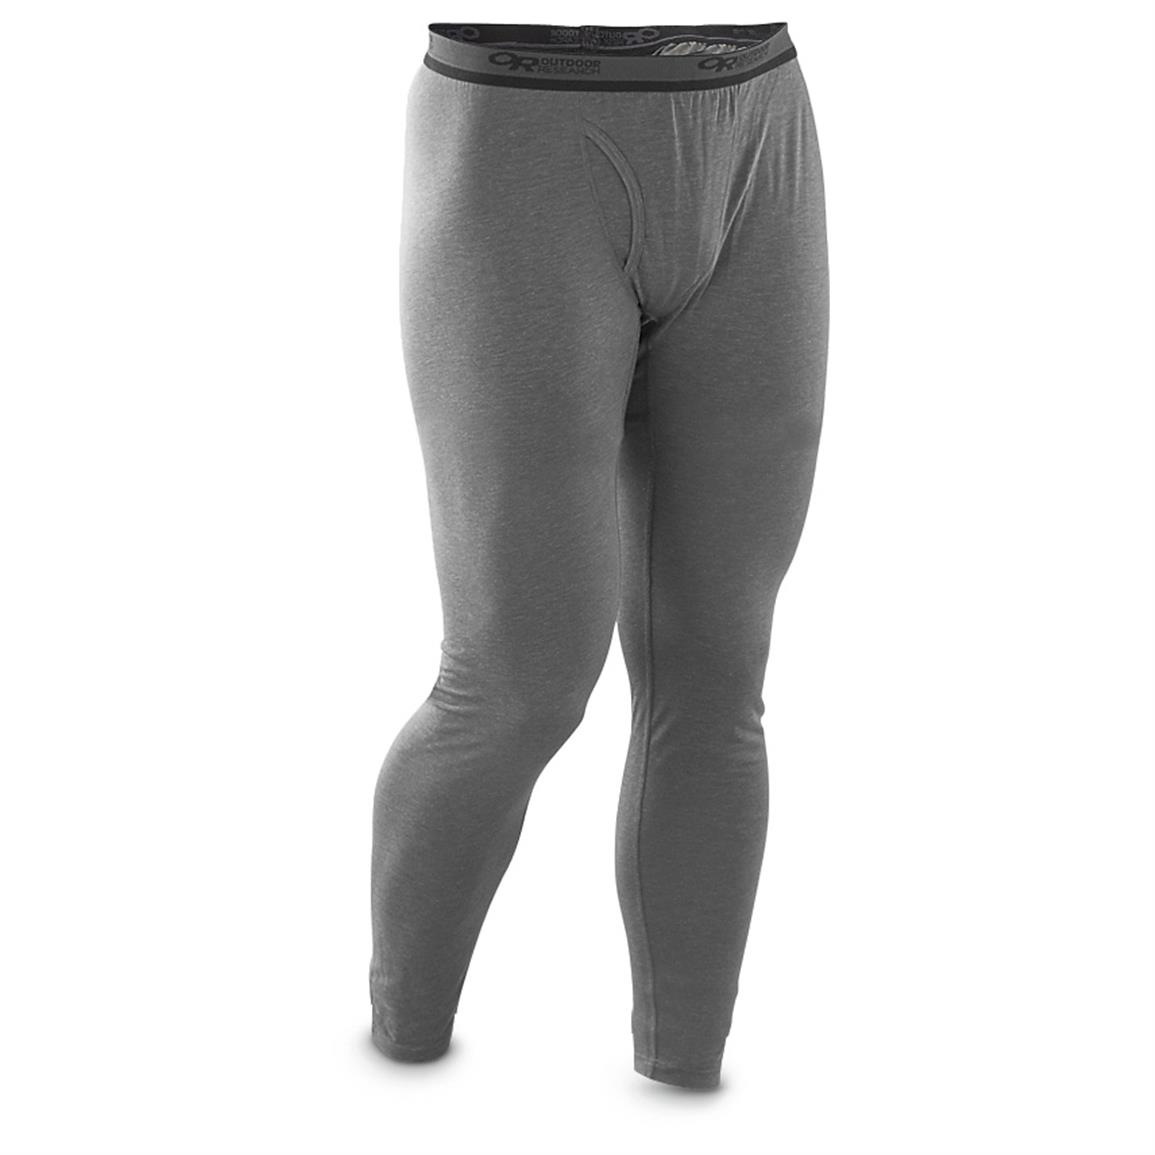 Outdoor Research Sequence Men's Leggings, Charcoal